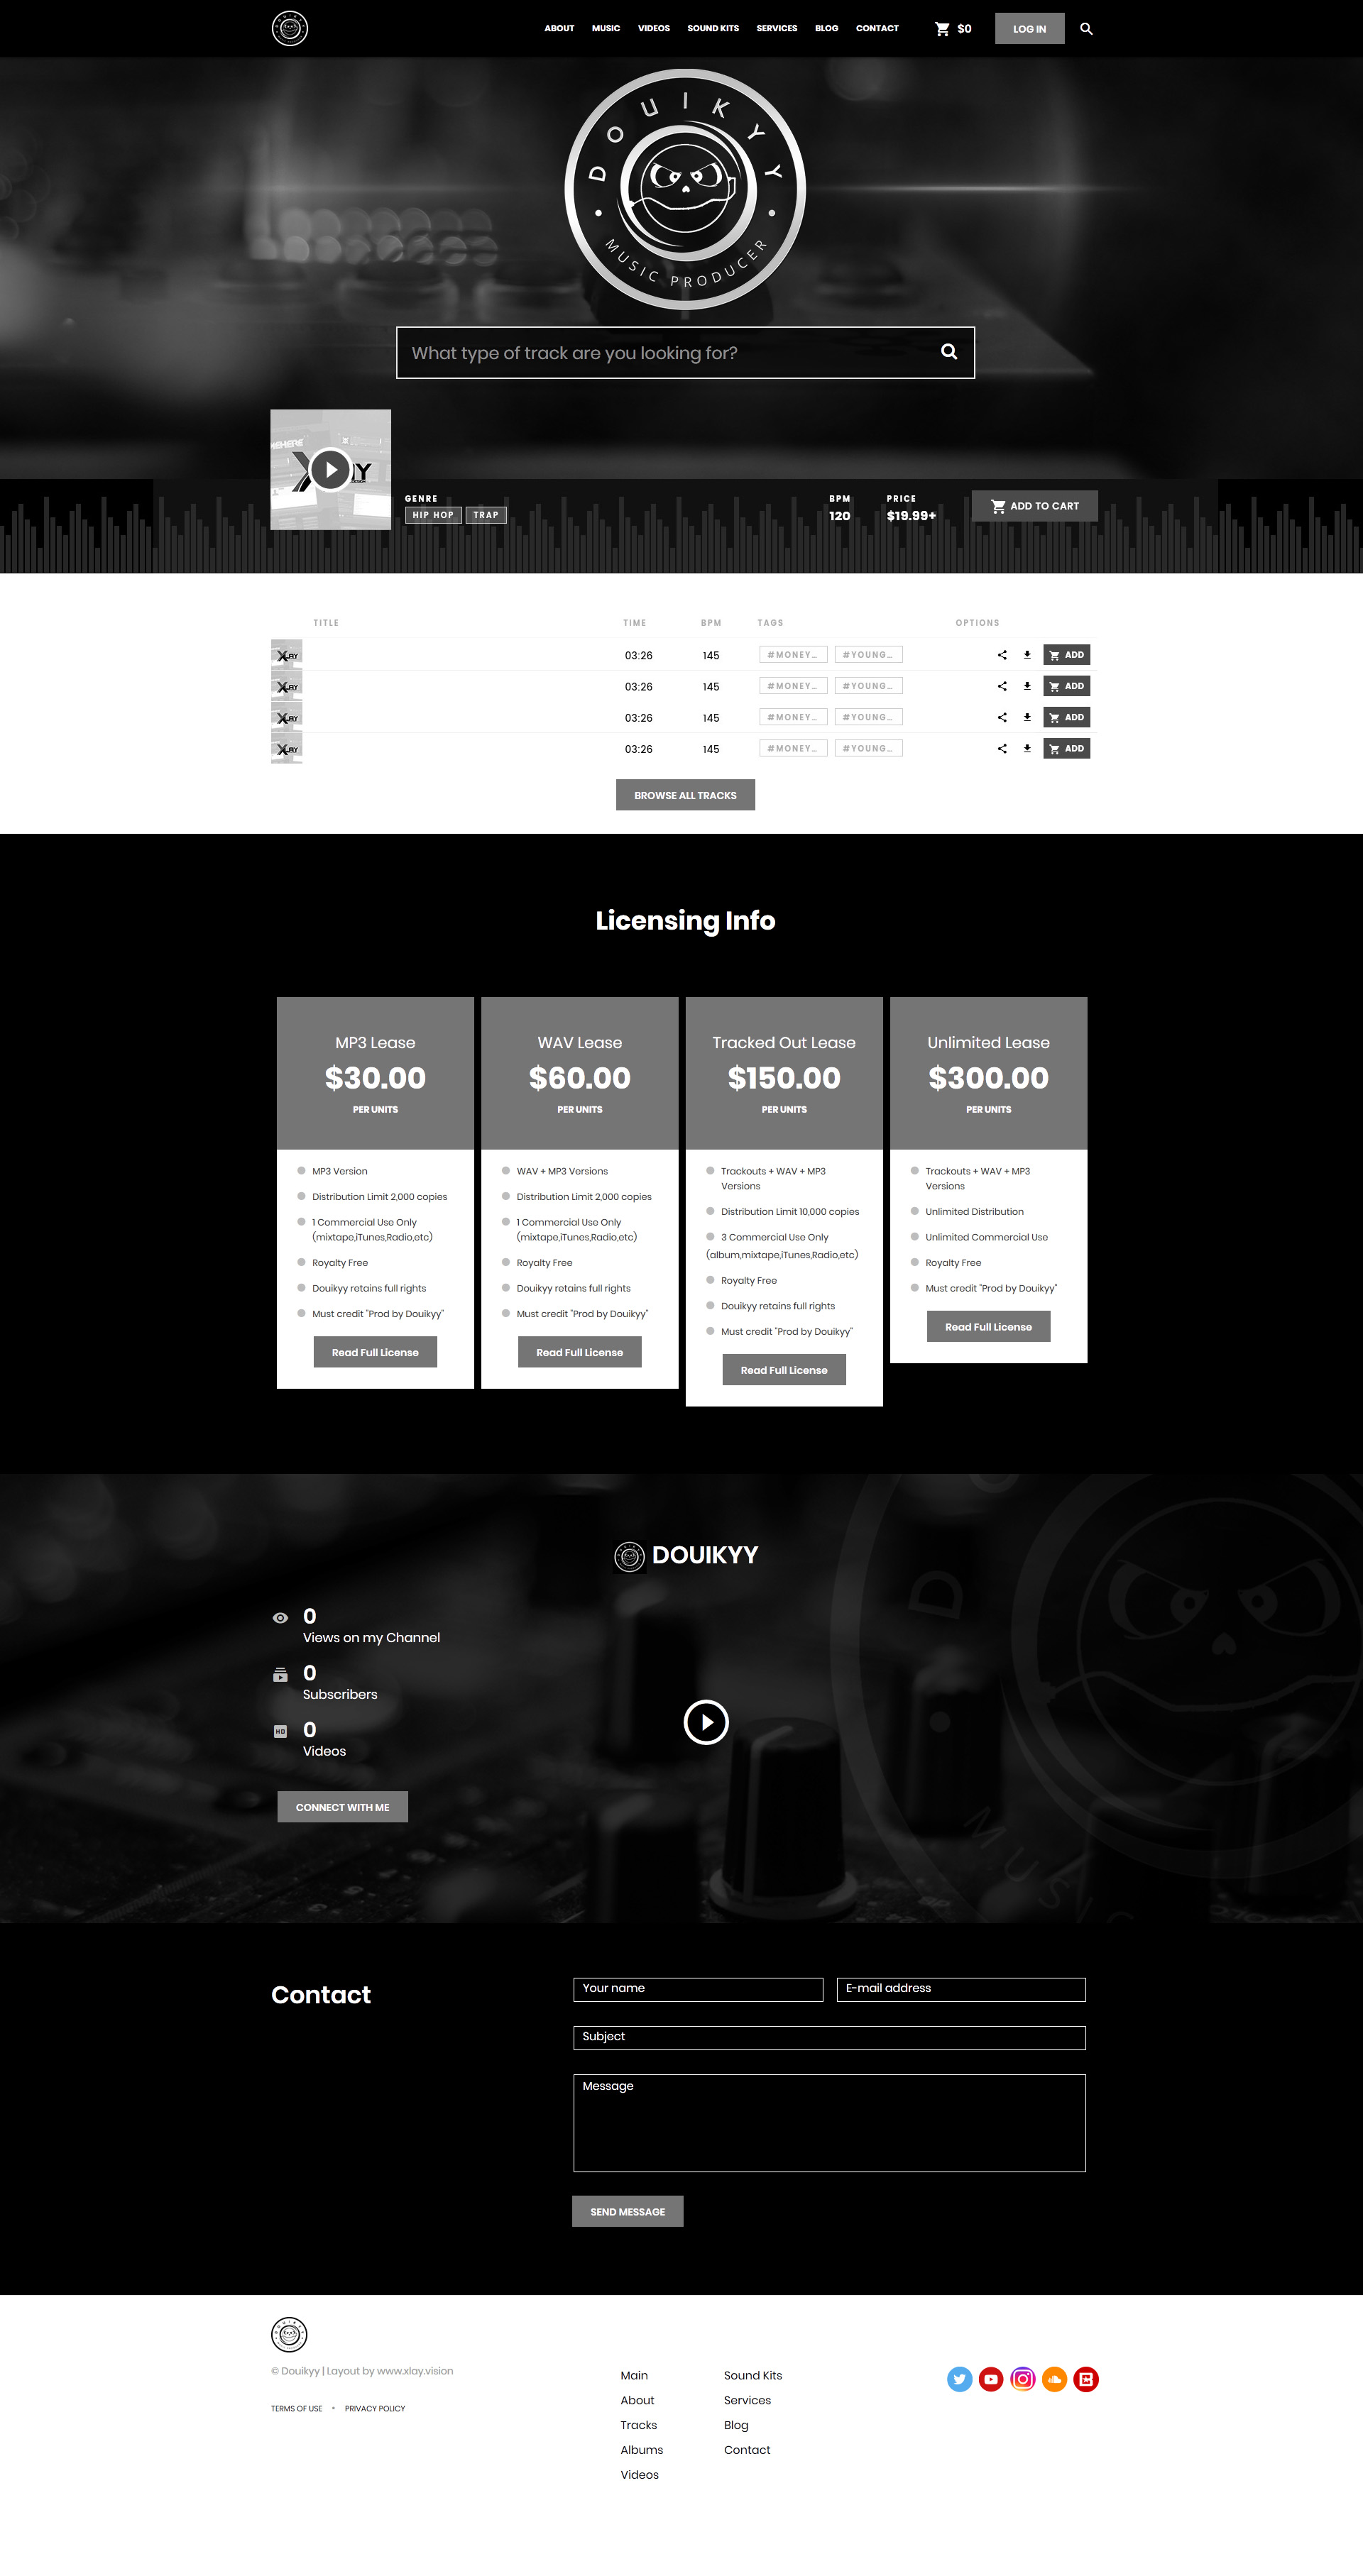 Custom Beatstars Pro Page 2.0 Design for Douikyy